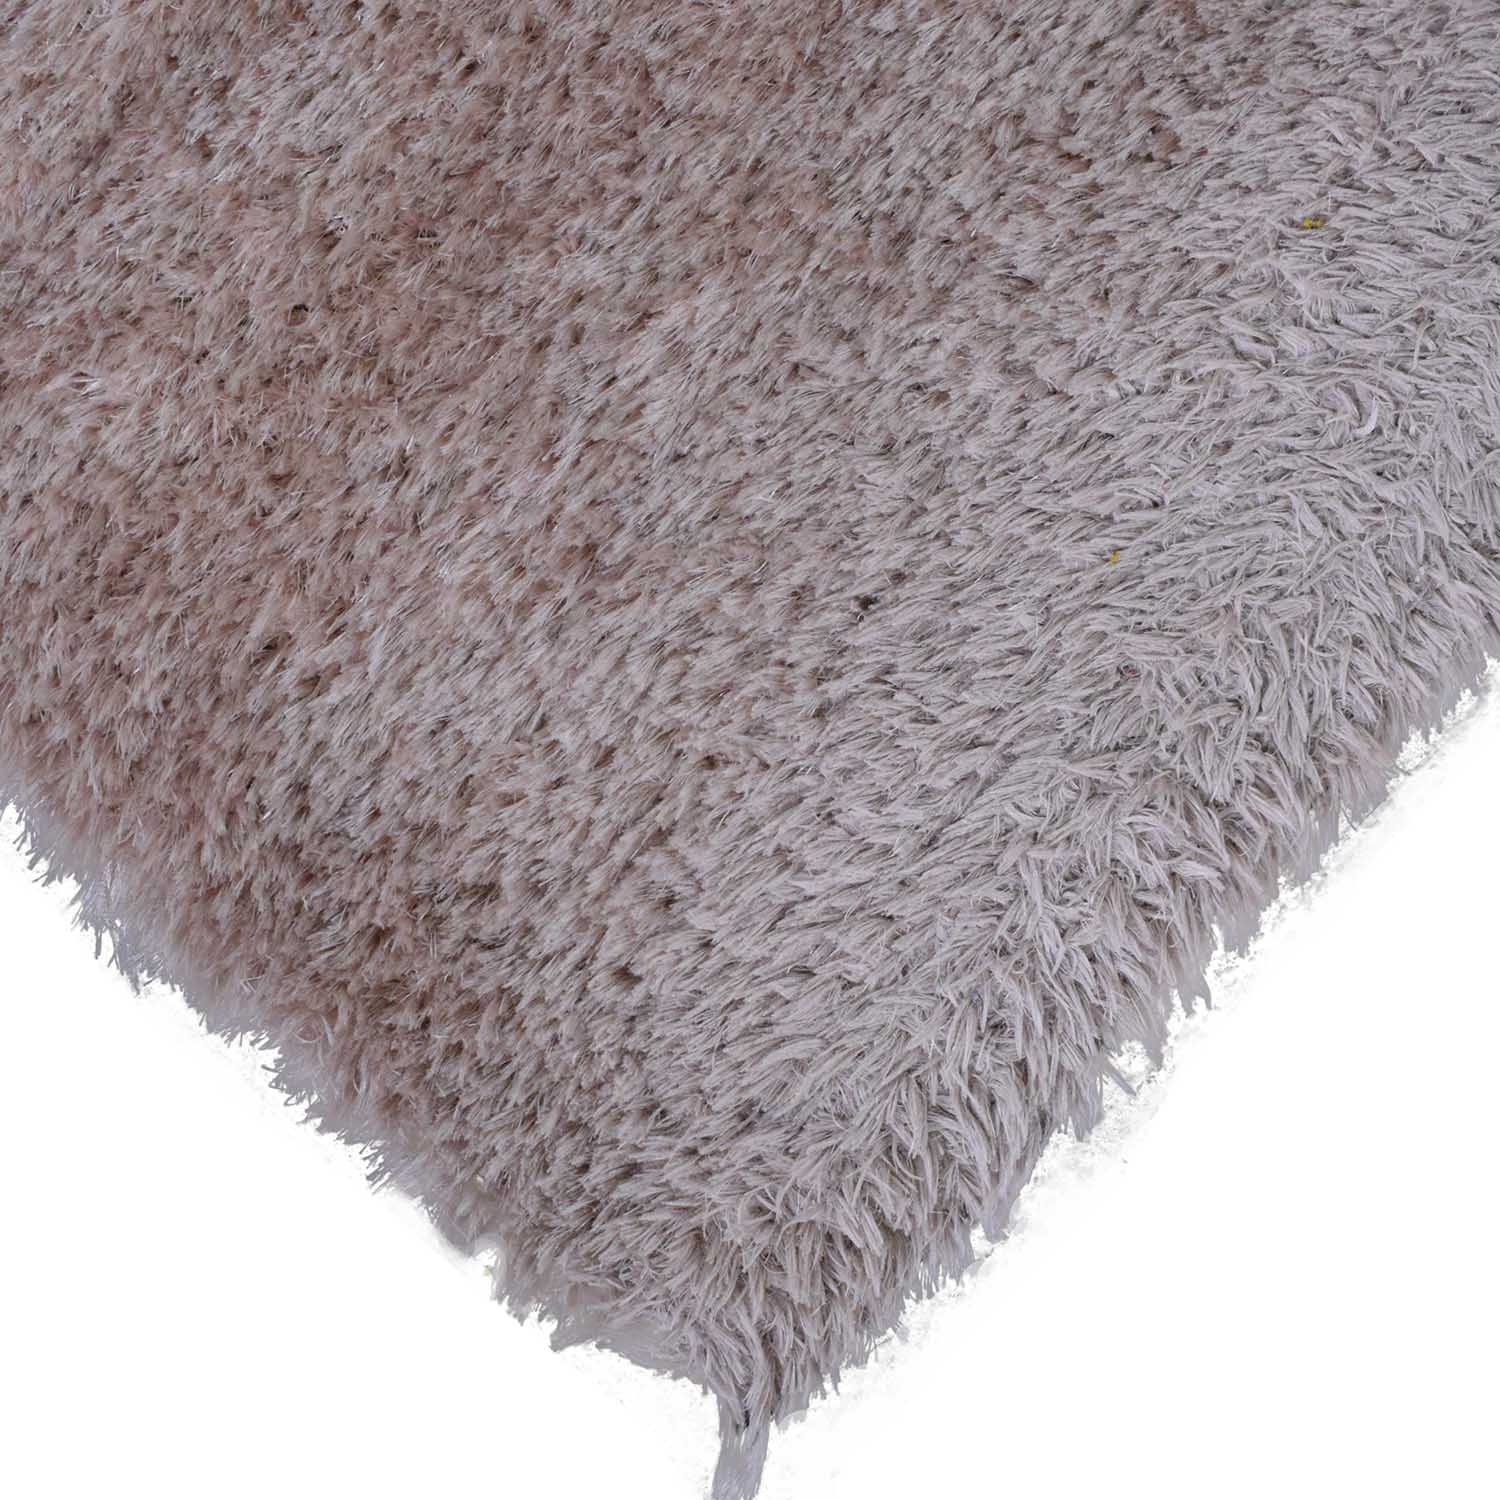 ABC Carpet & Home ABC Carpet & Home Stepevi Touch Me Short Pile Rug nj